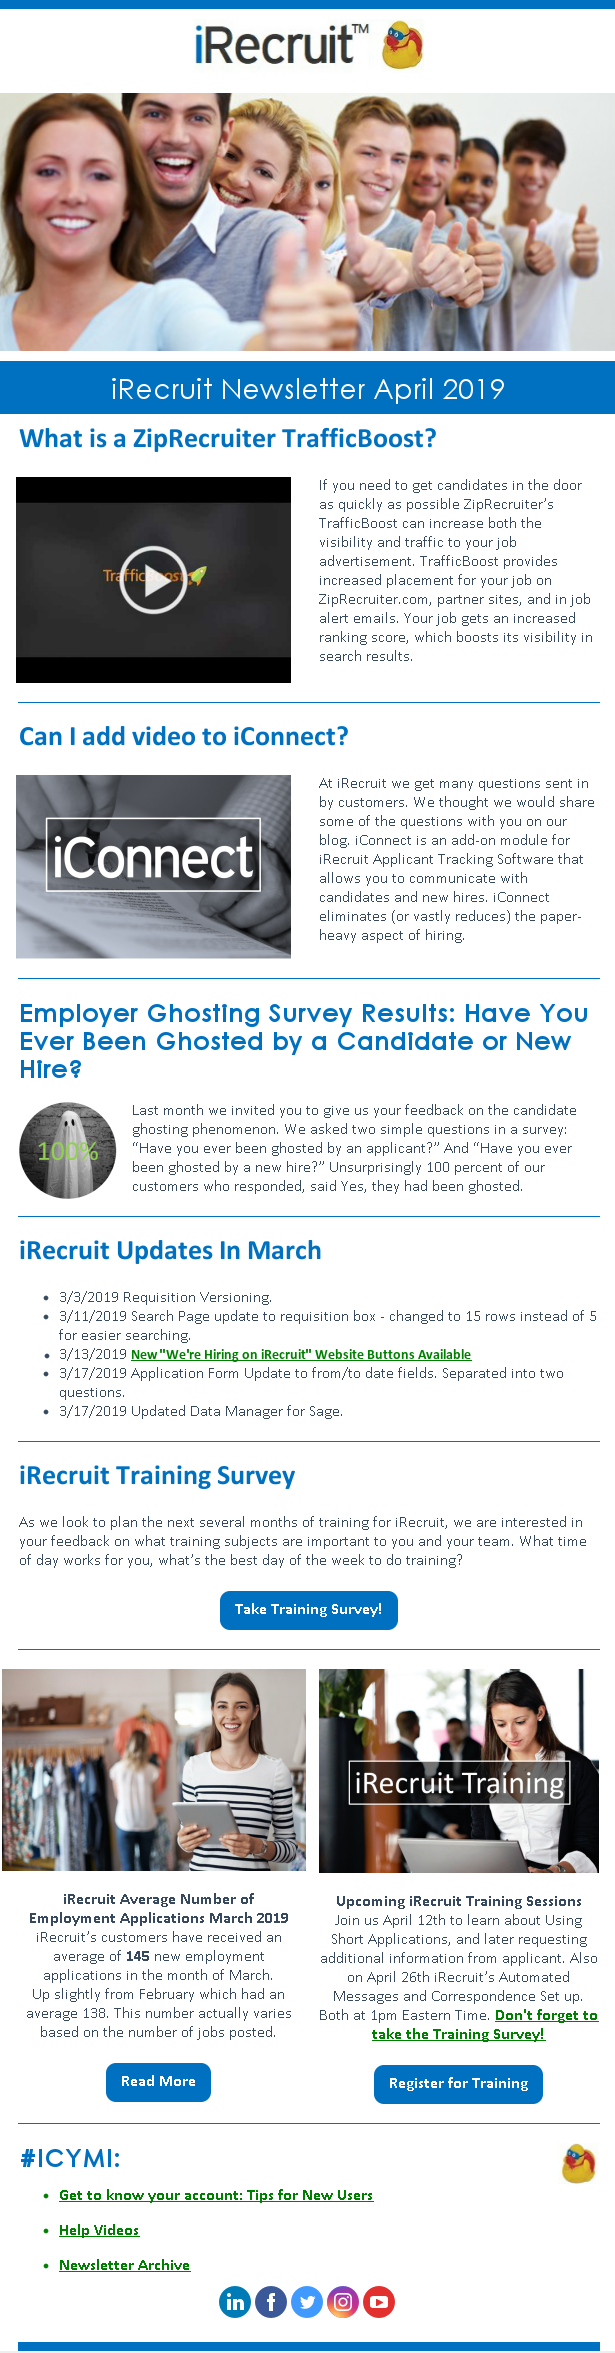 iRecruit Customer Newsletter April 2019